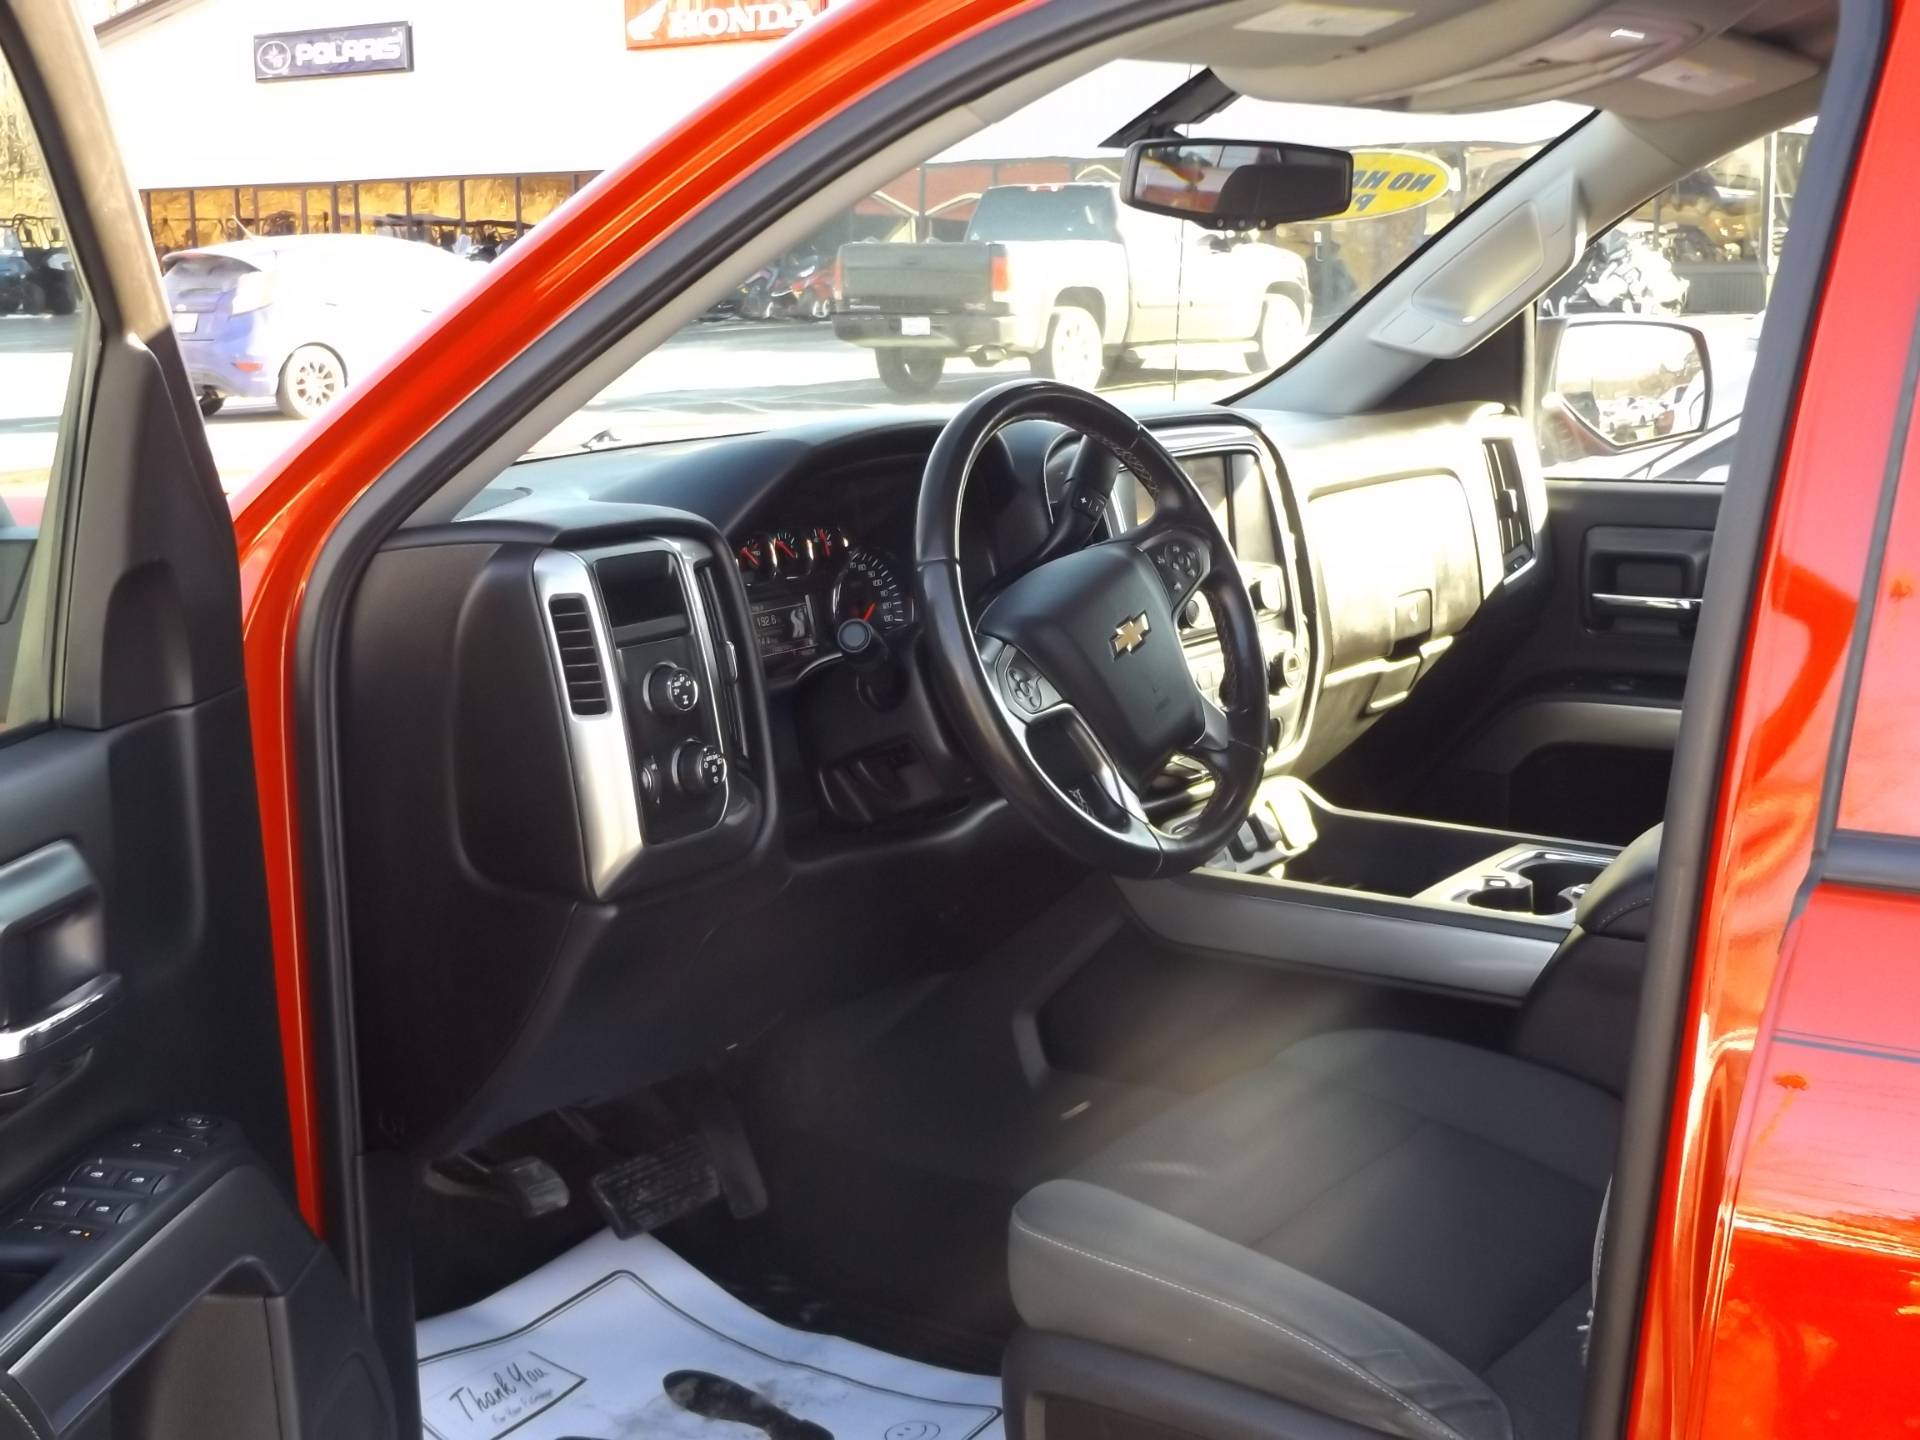 2014 Chevrolet Silverado in Lewiston, Maine - Photo 7